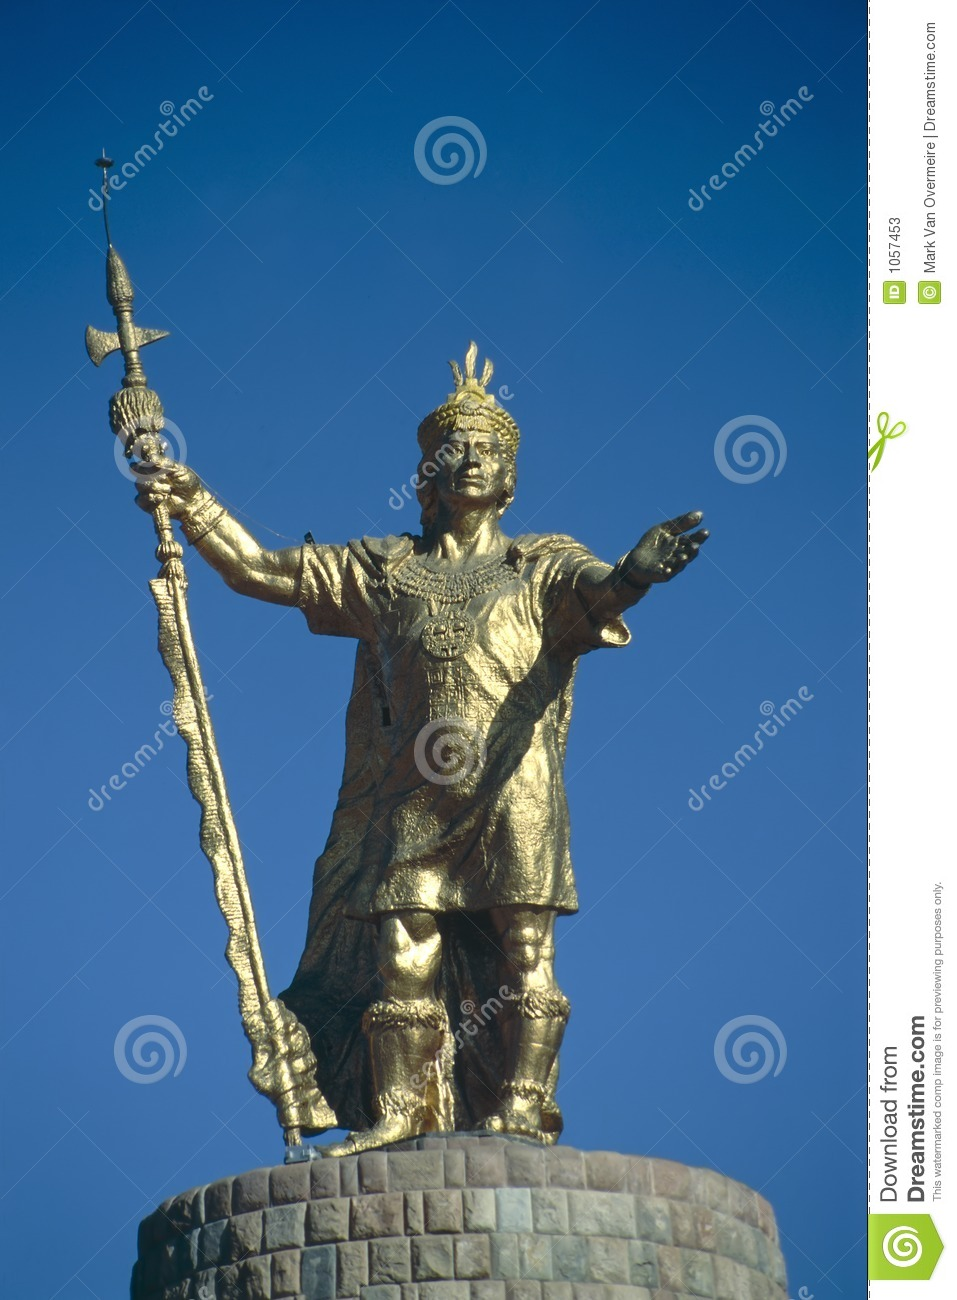 Golden Statue Of The Inca King Atahualpa In Cuzco Peru